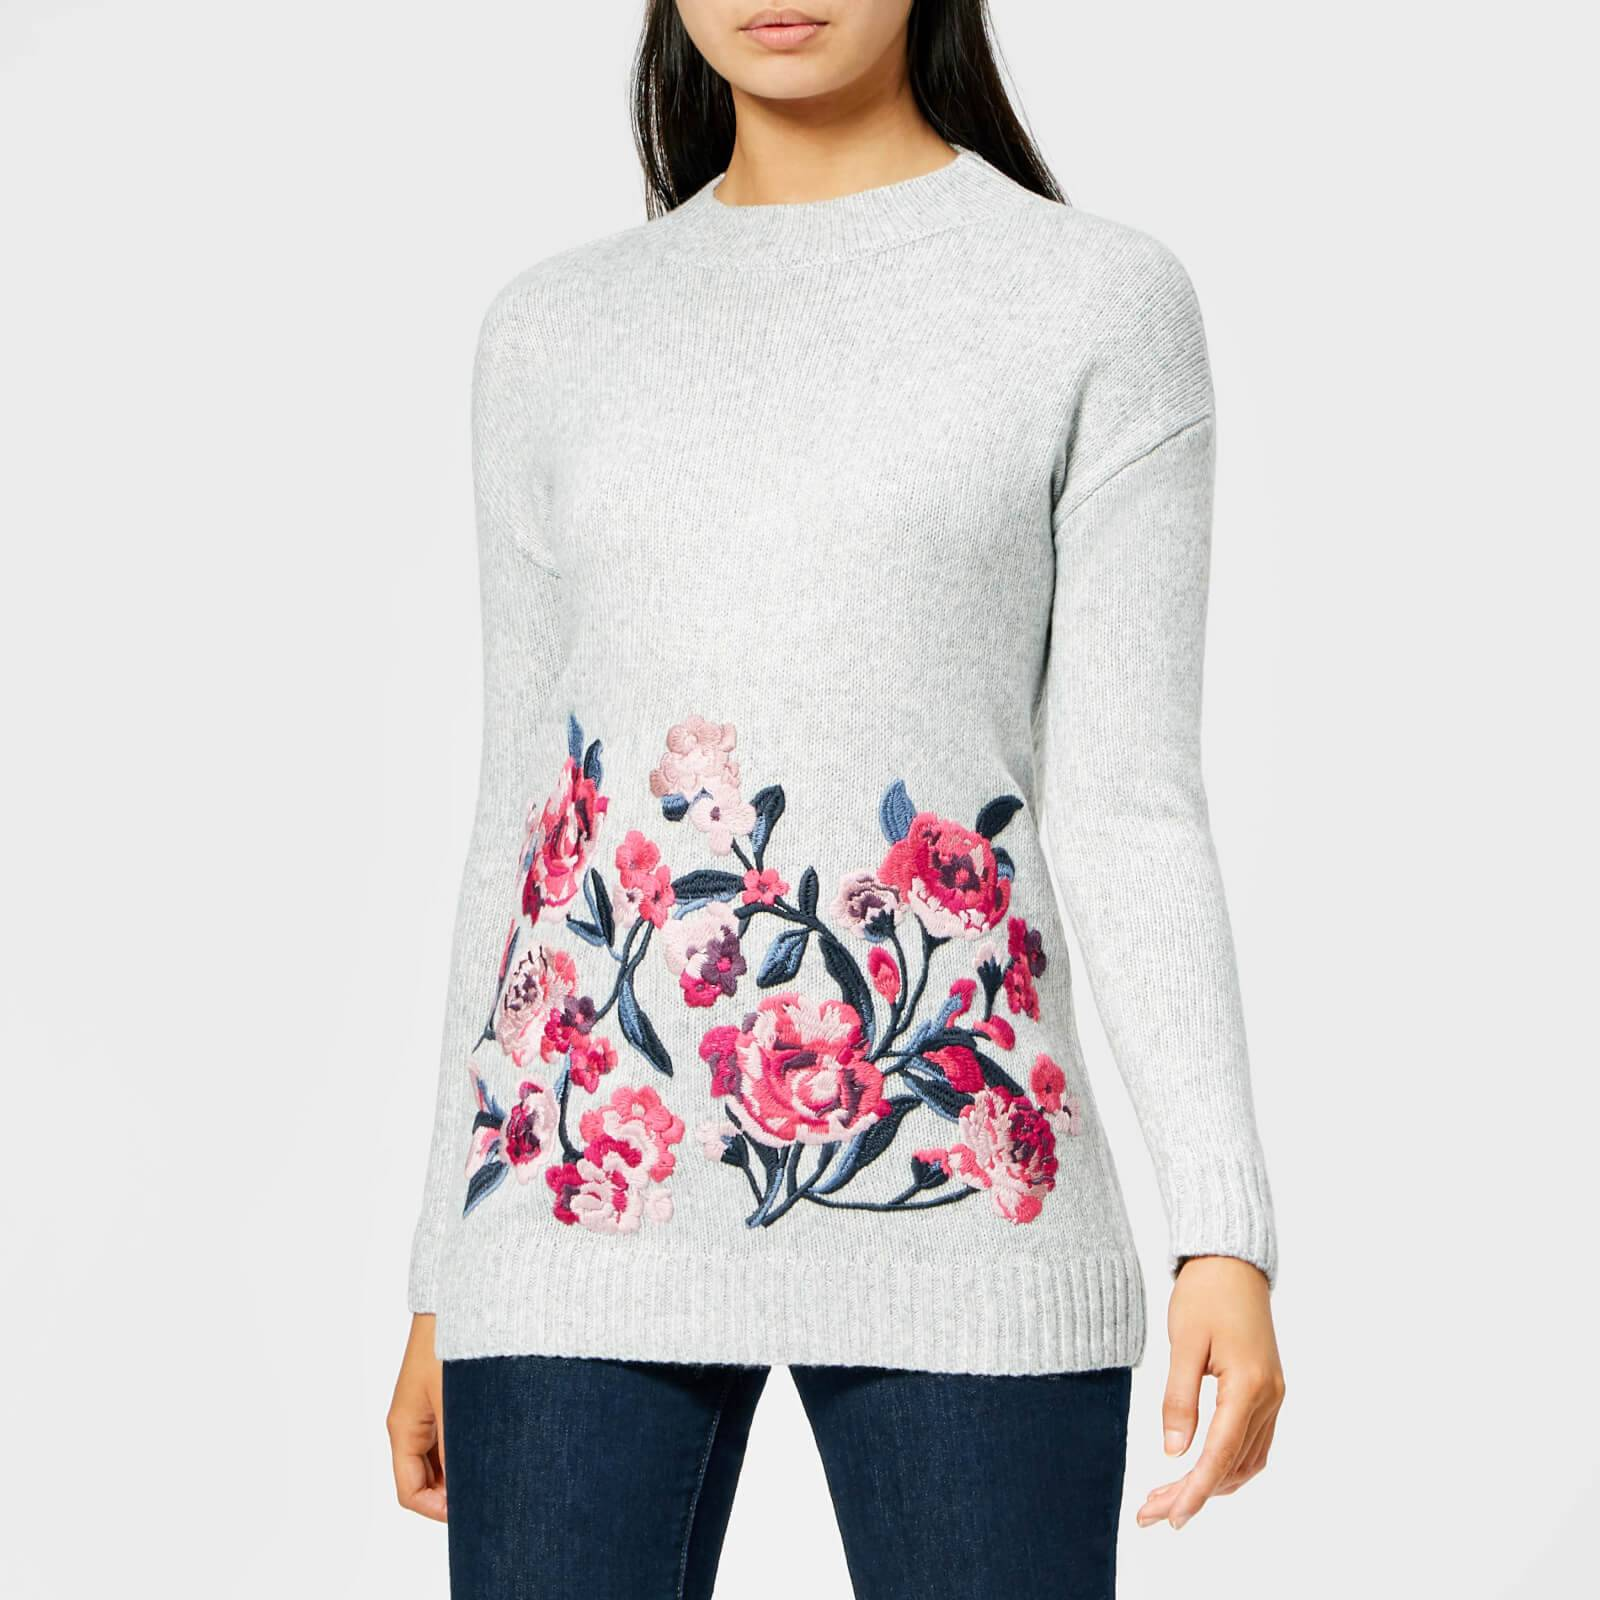 Joules Women's Penny Embroidered Jumper - Grey Marl - UK 14 - Grey